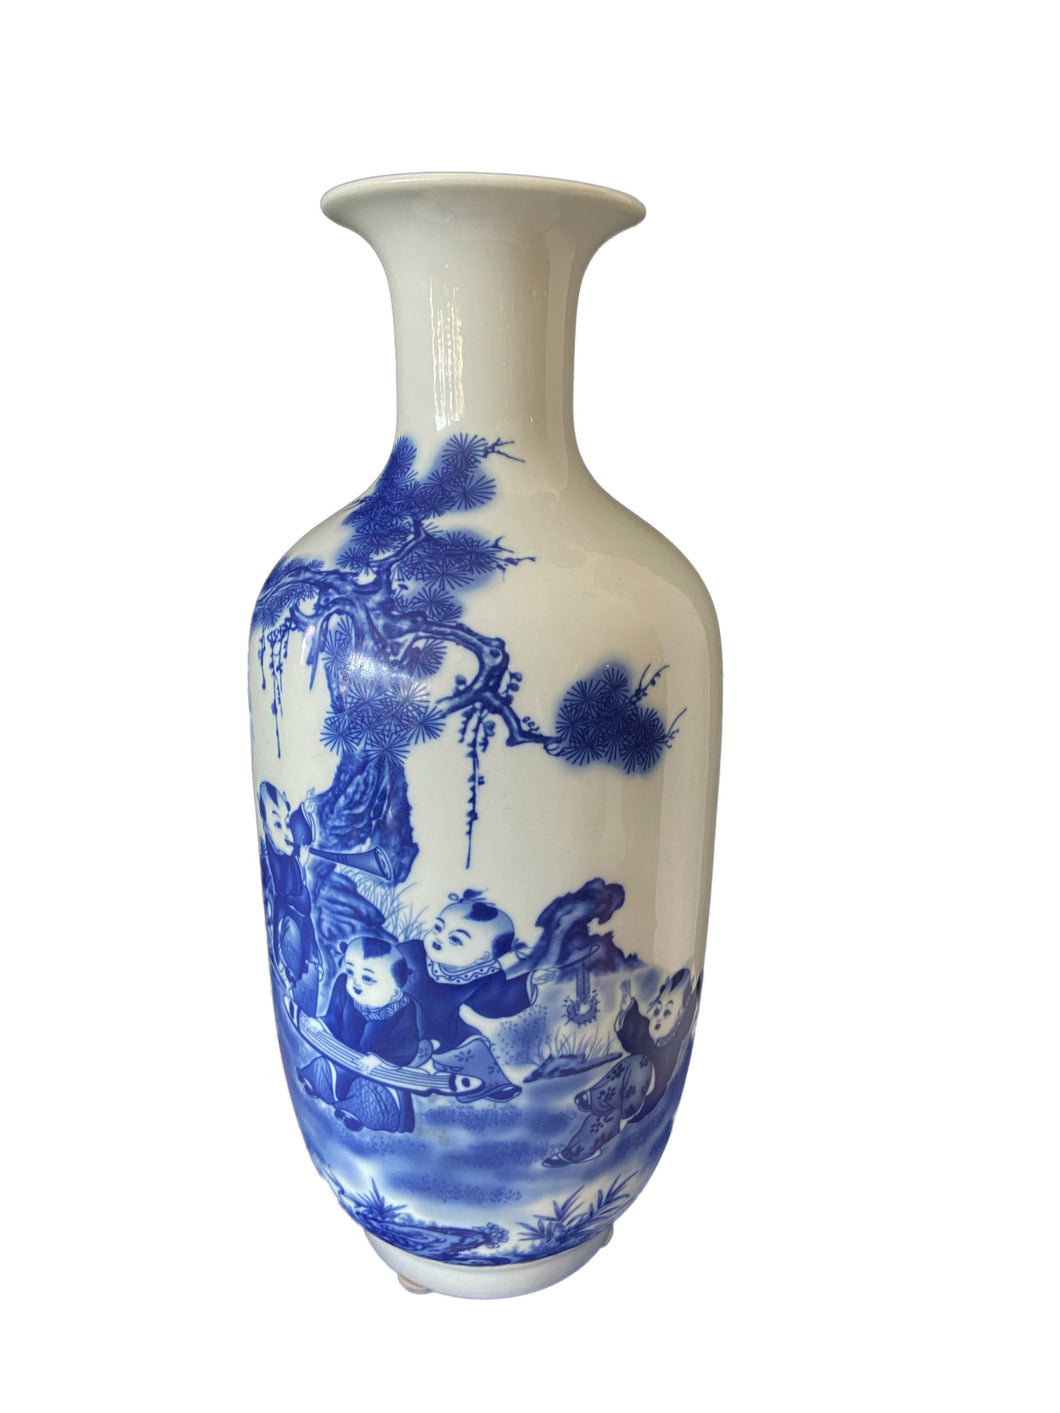 Porcelain Blue & White Chinoiserie Vase 17.75